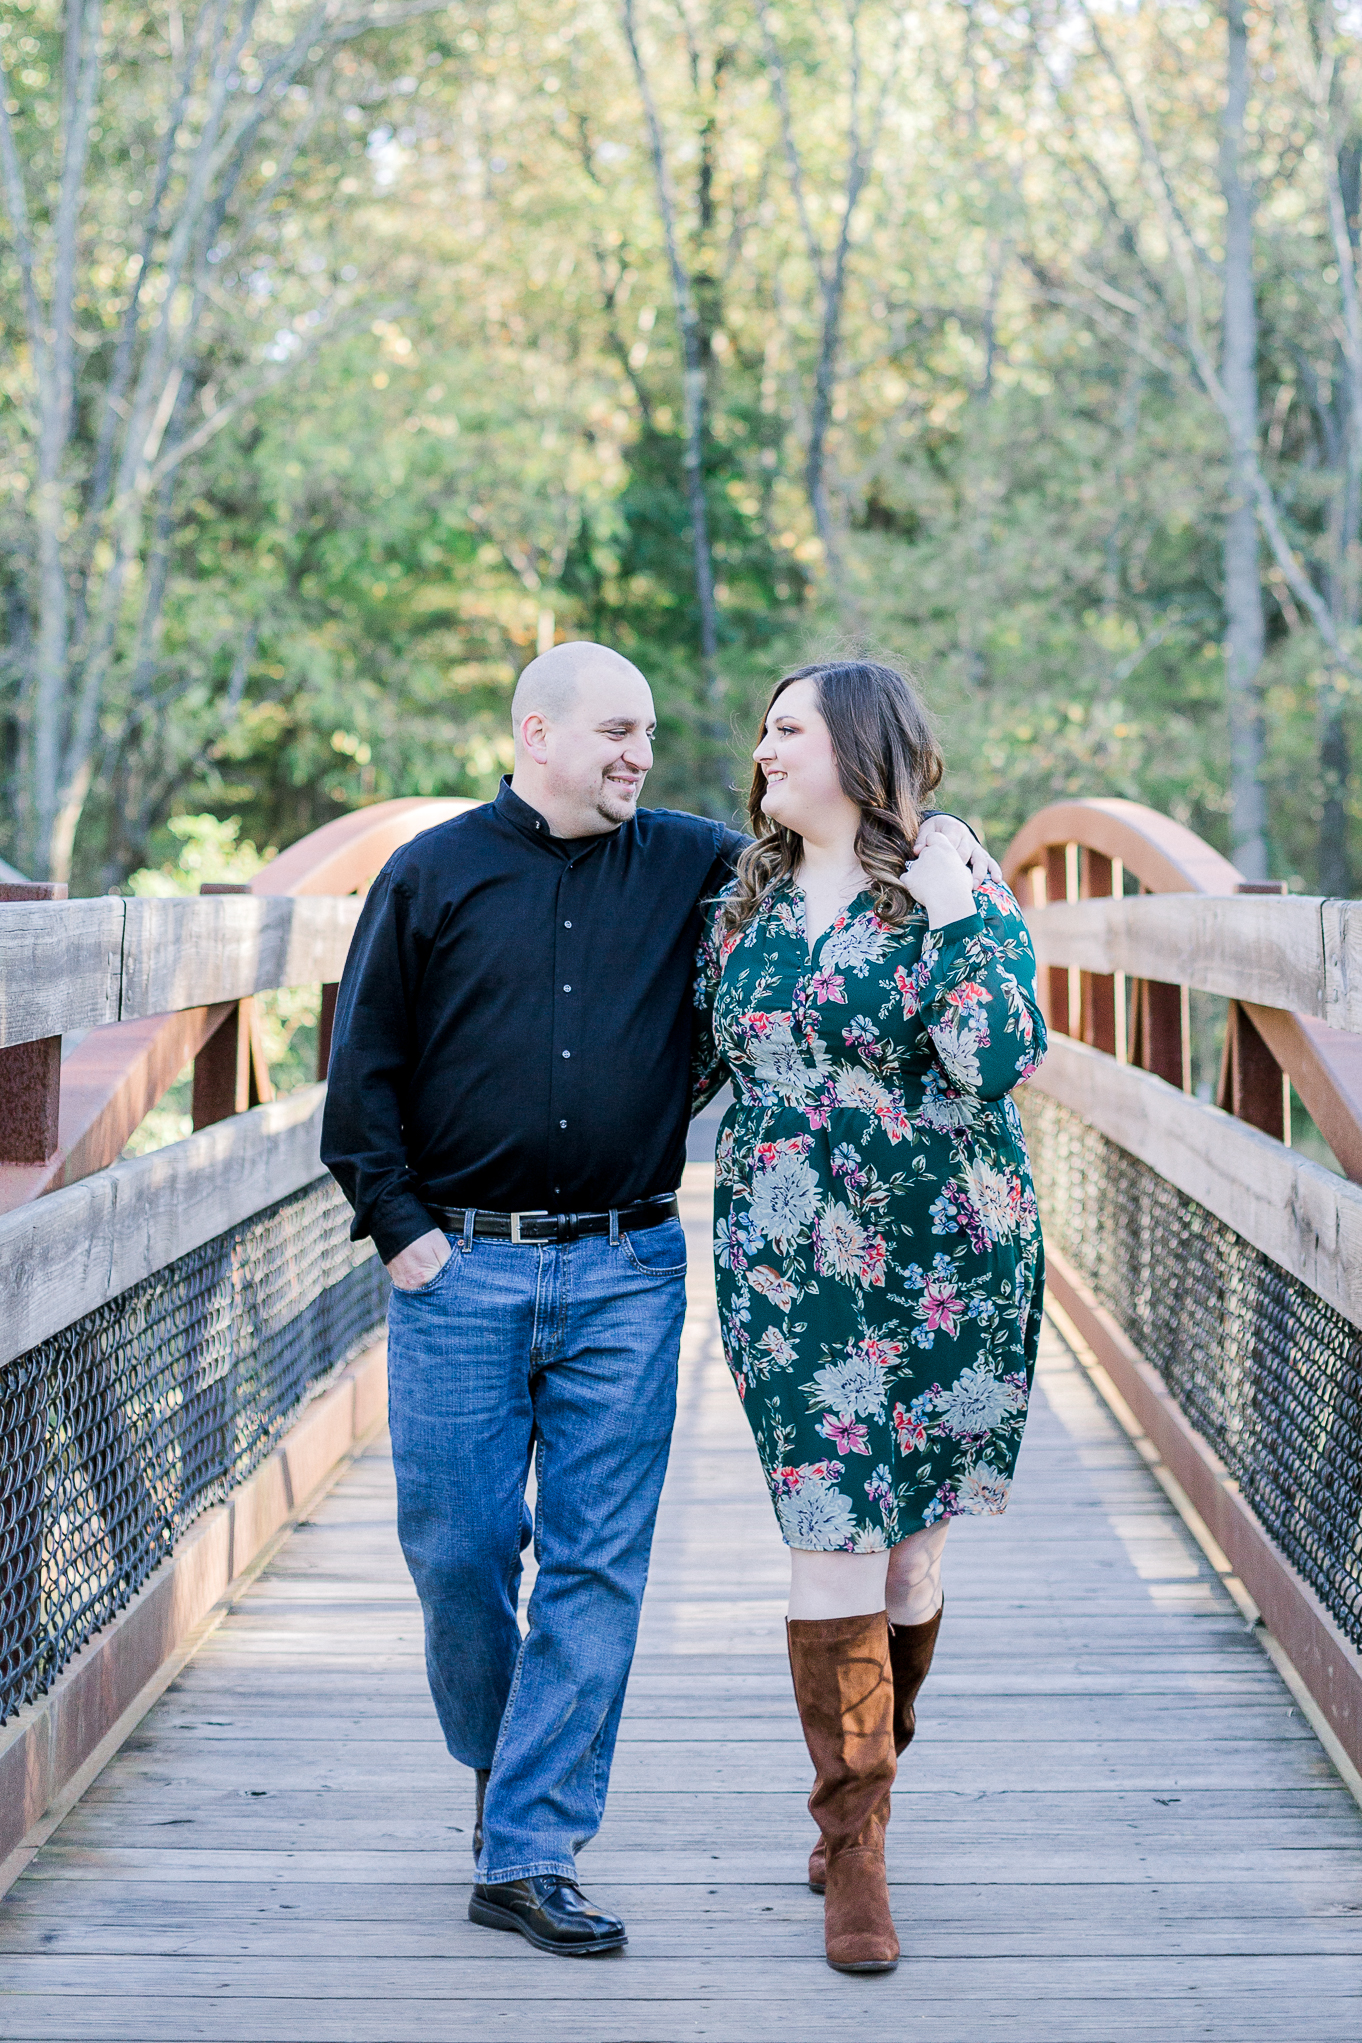 Jacobsburg State Park Nazareth Pennsylvania Woodsy Fall Engagement Session wedding and lifestyle photographer Lytle Photo Co (36 of 64).jpg